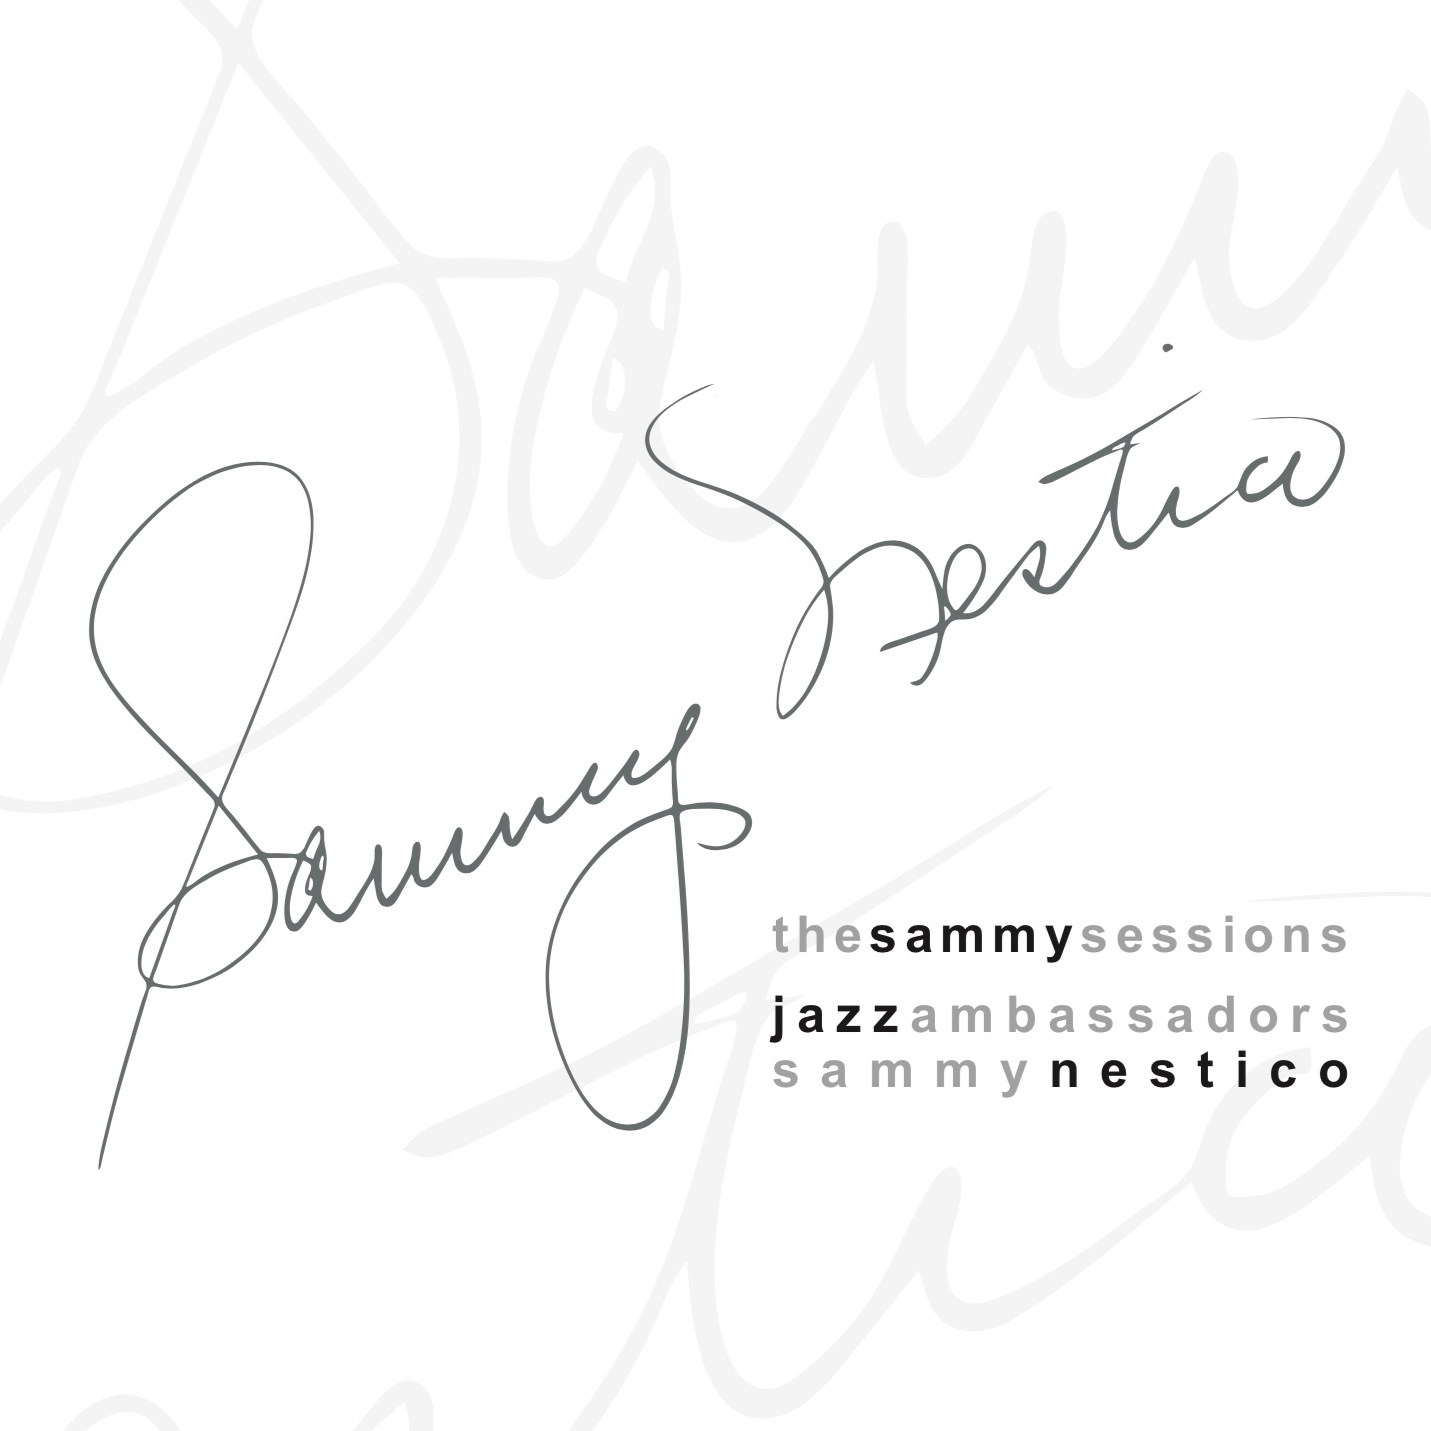 """The Sammy Sessions"" The  U.S. Army Jazz Ambassadors  play new music written and arranged by  Sammy Nestico . Available in Stereo, Surround, and Immersive formats."